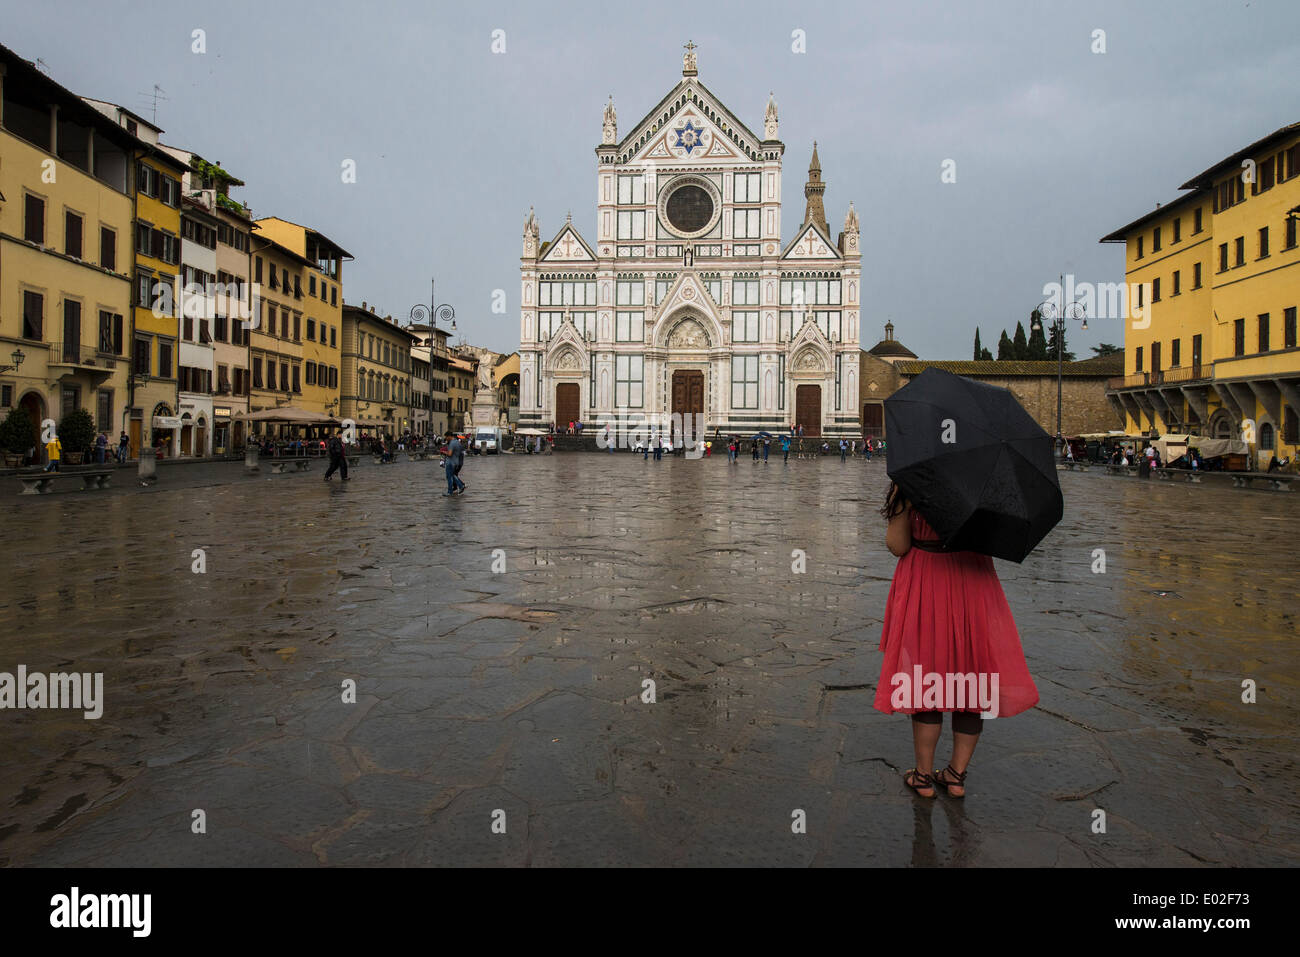 Eglise de Santa Croce, Florence, Toscane, Italie Photo Stock